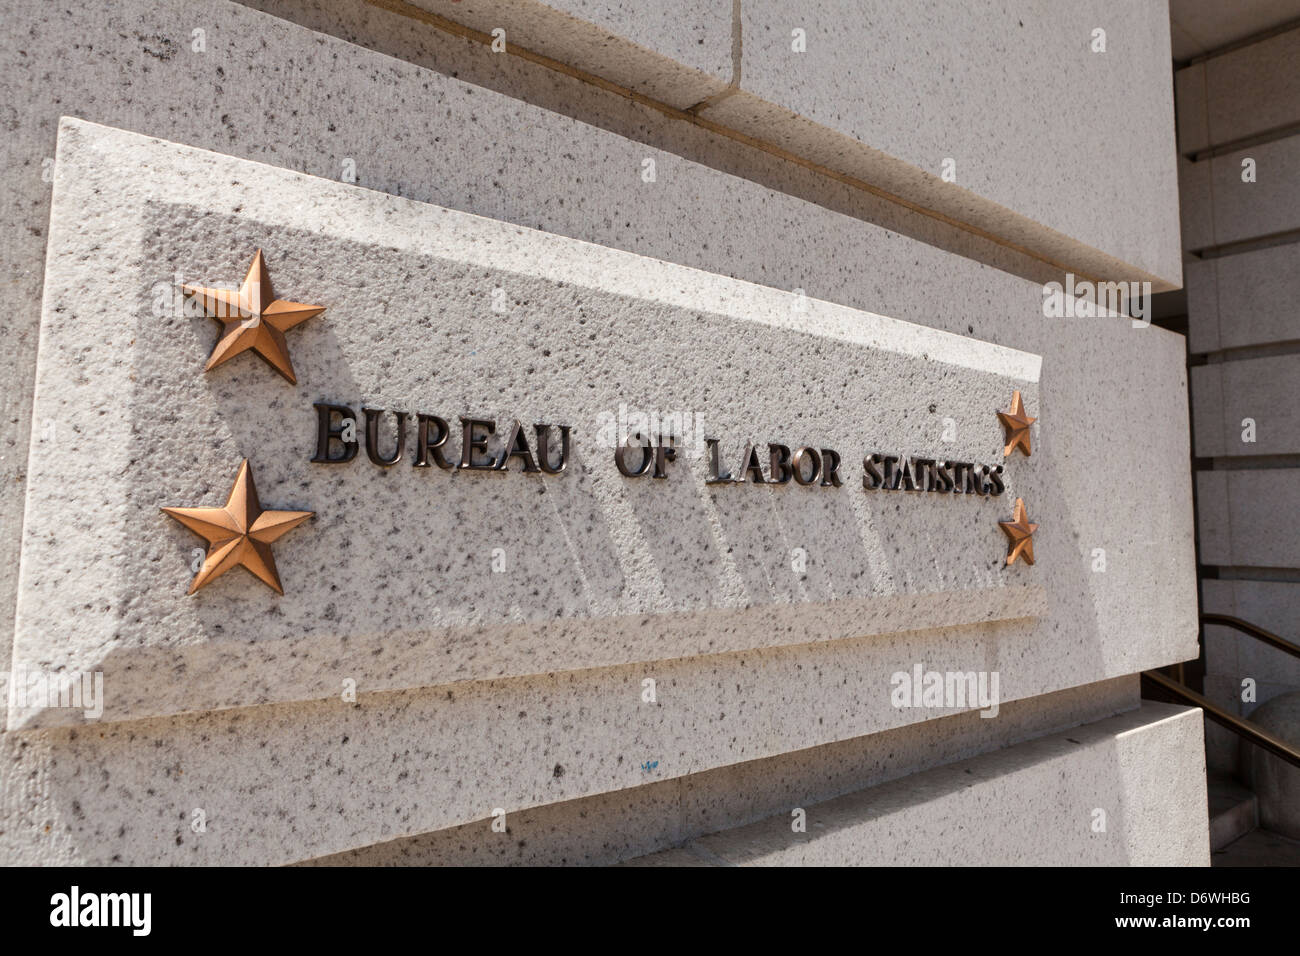 Bureau of labor statistics headquarters washington dc usa stock